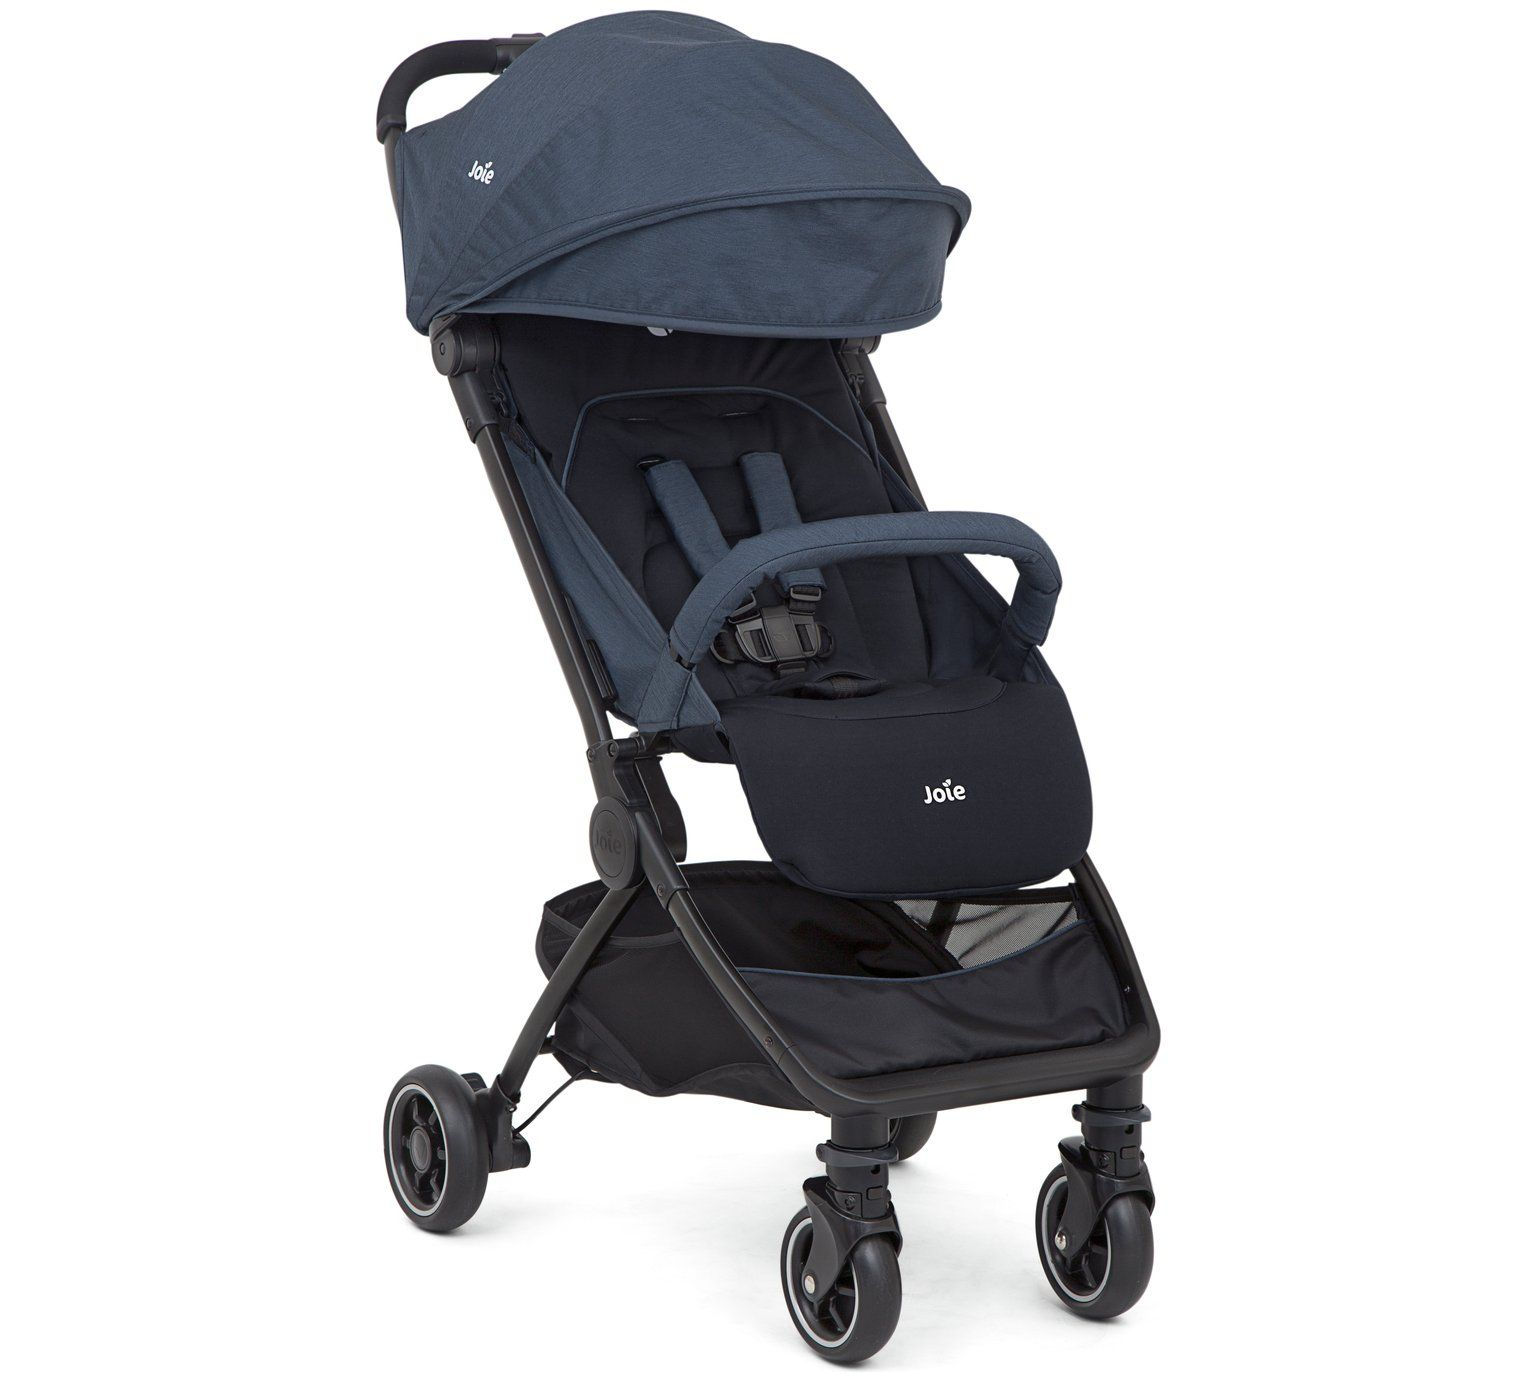 Joie Buggy Chrome Test Buy Joie Pact Stroller At Argos Co Uk Your Online Shop For